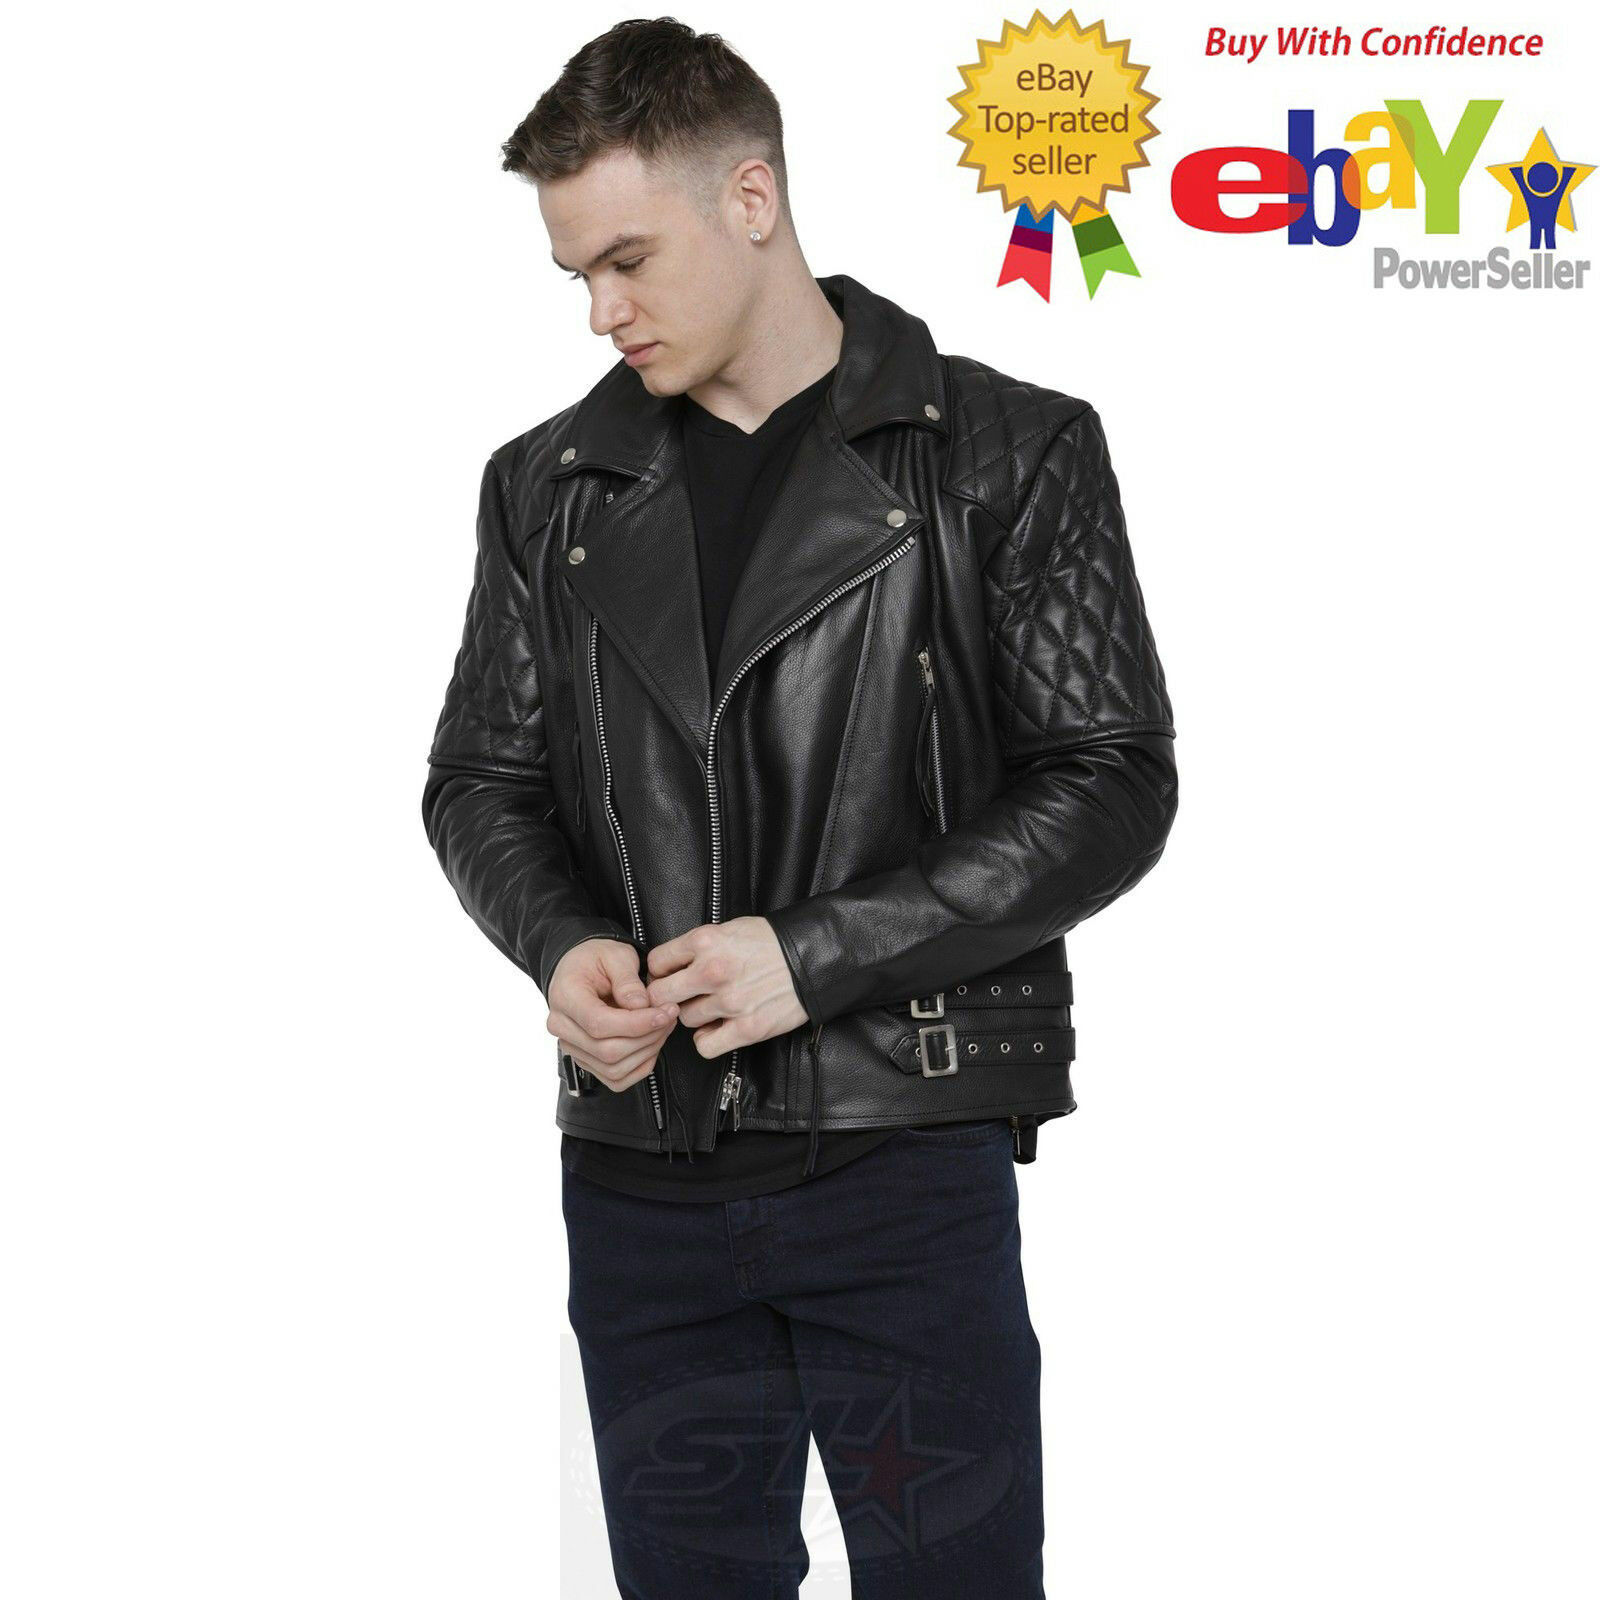 f0635260c90a95 Details about Uk Stock Men s Black Brando Vintage Motorcycle Real Leather  Quilted Biker Jacket